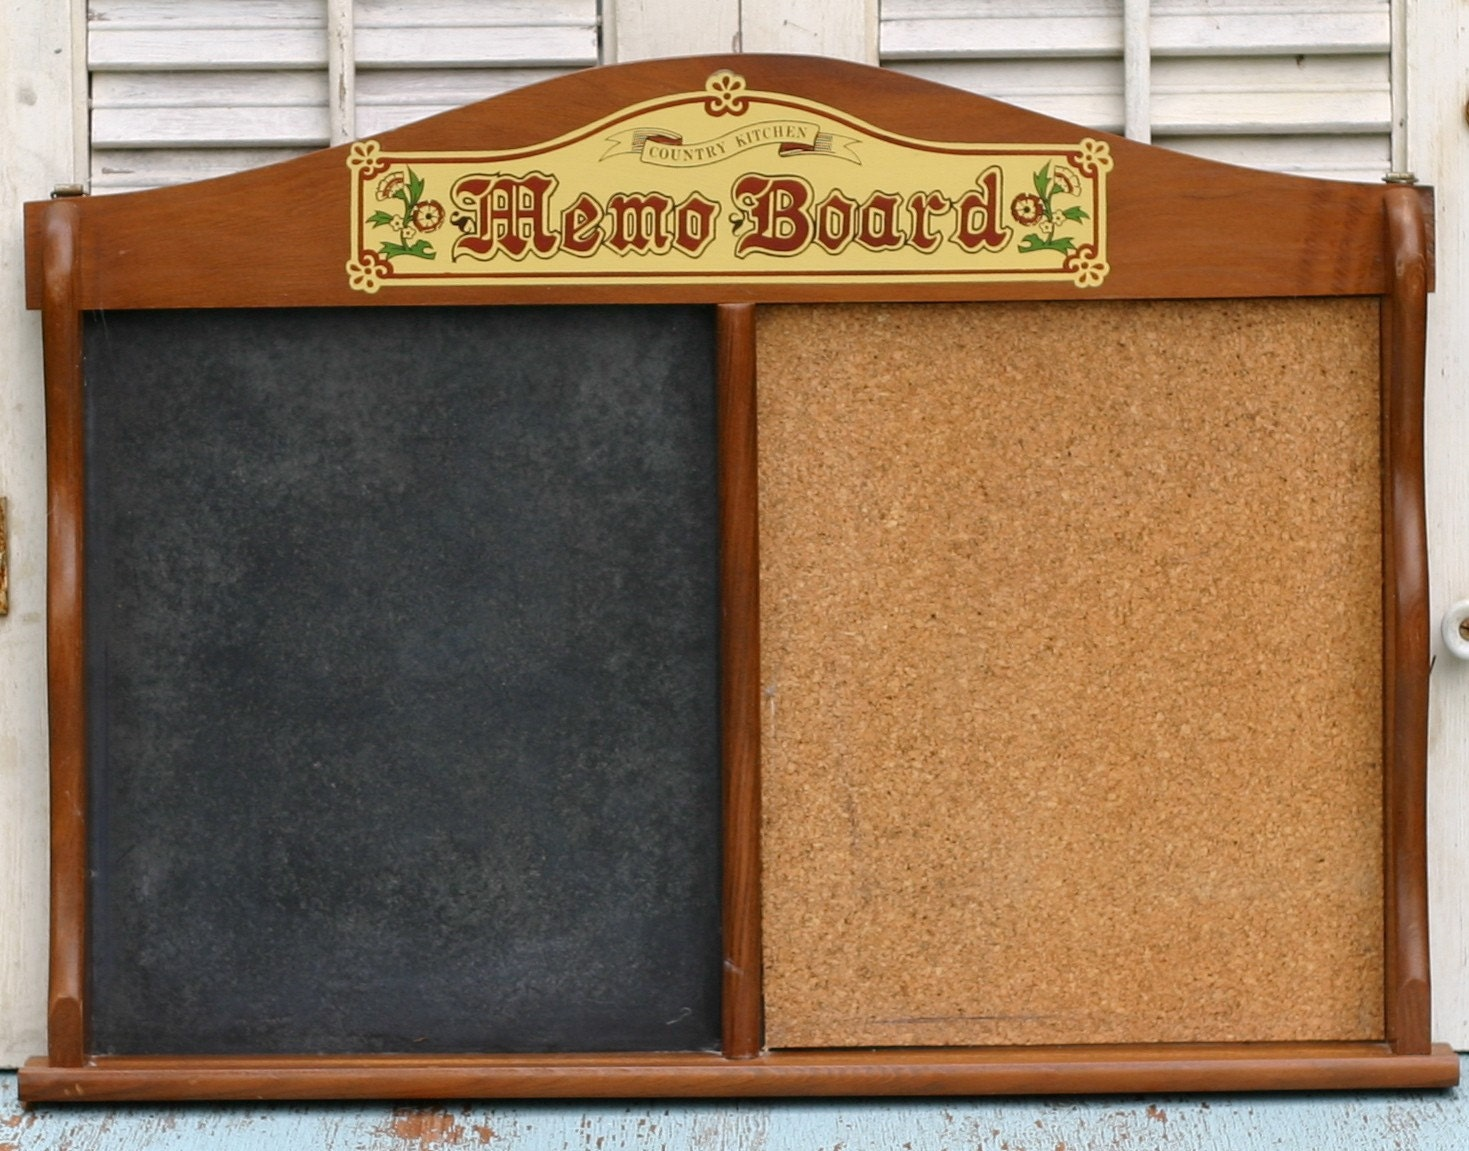 Vintage Country Kitchen Memo Board Chalk Board By Ivorybird. Grandmothers Kitchen. Top Rated Kitchen Faucets. California Pizza Kitchen Palm Springs. Eat At Hells Kitchen. Pictures Of Remodeled Kitchens. Hells Kitchen Location. Kitchen Cabinet Painting. Gel Pro Kitchen Mats